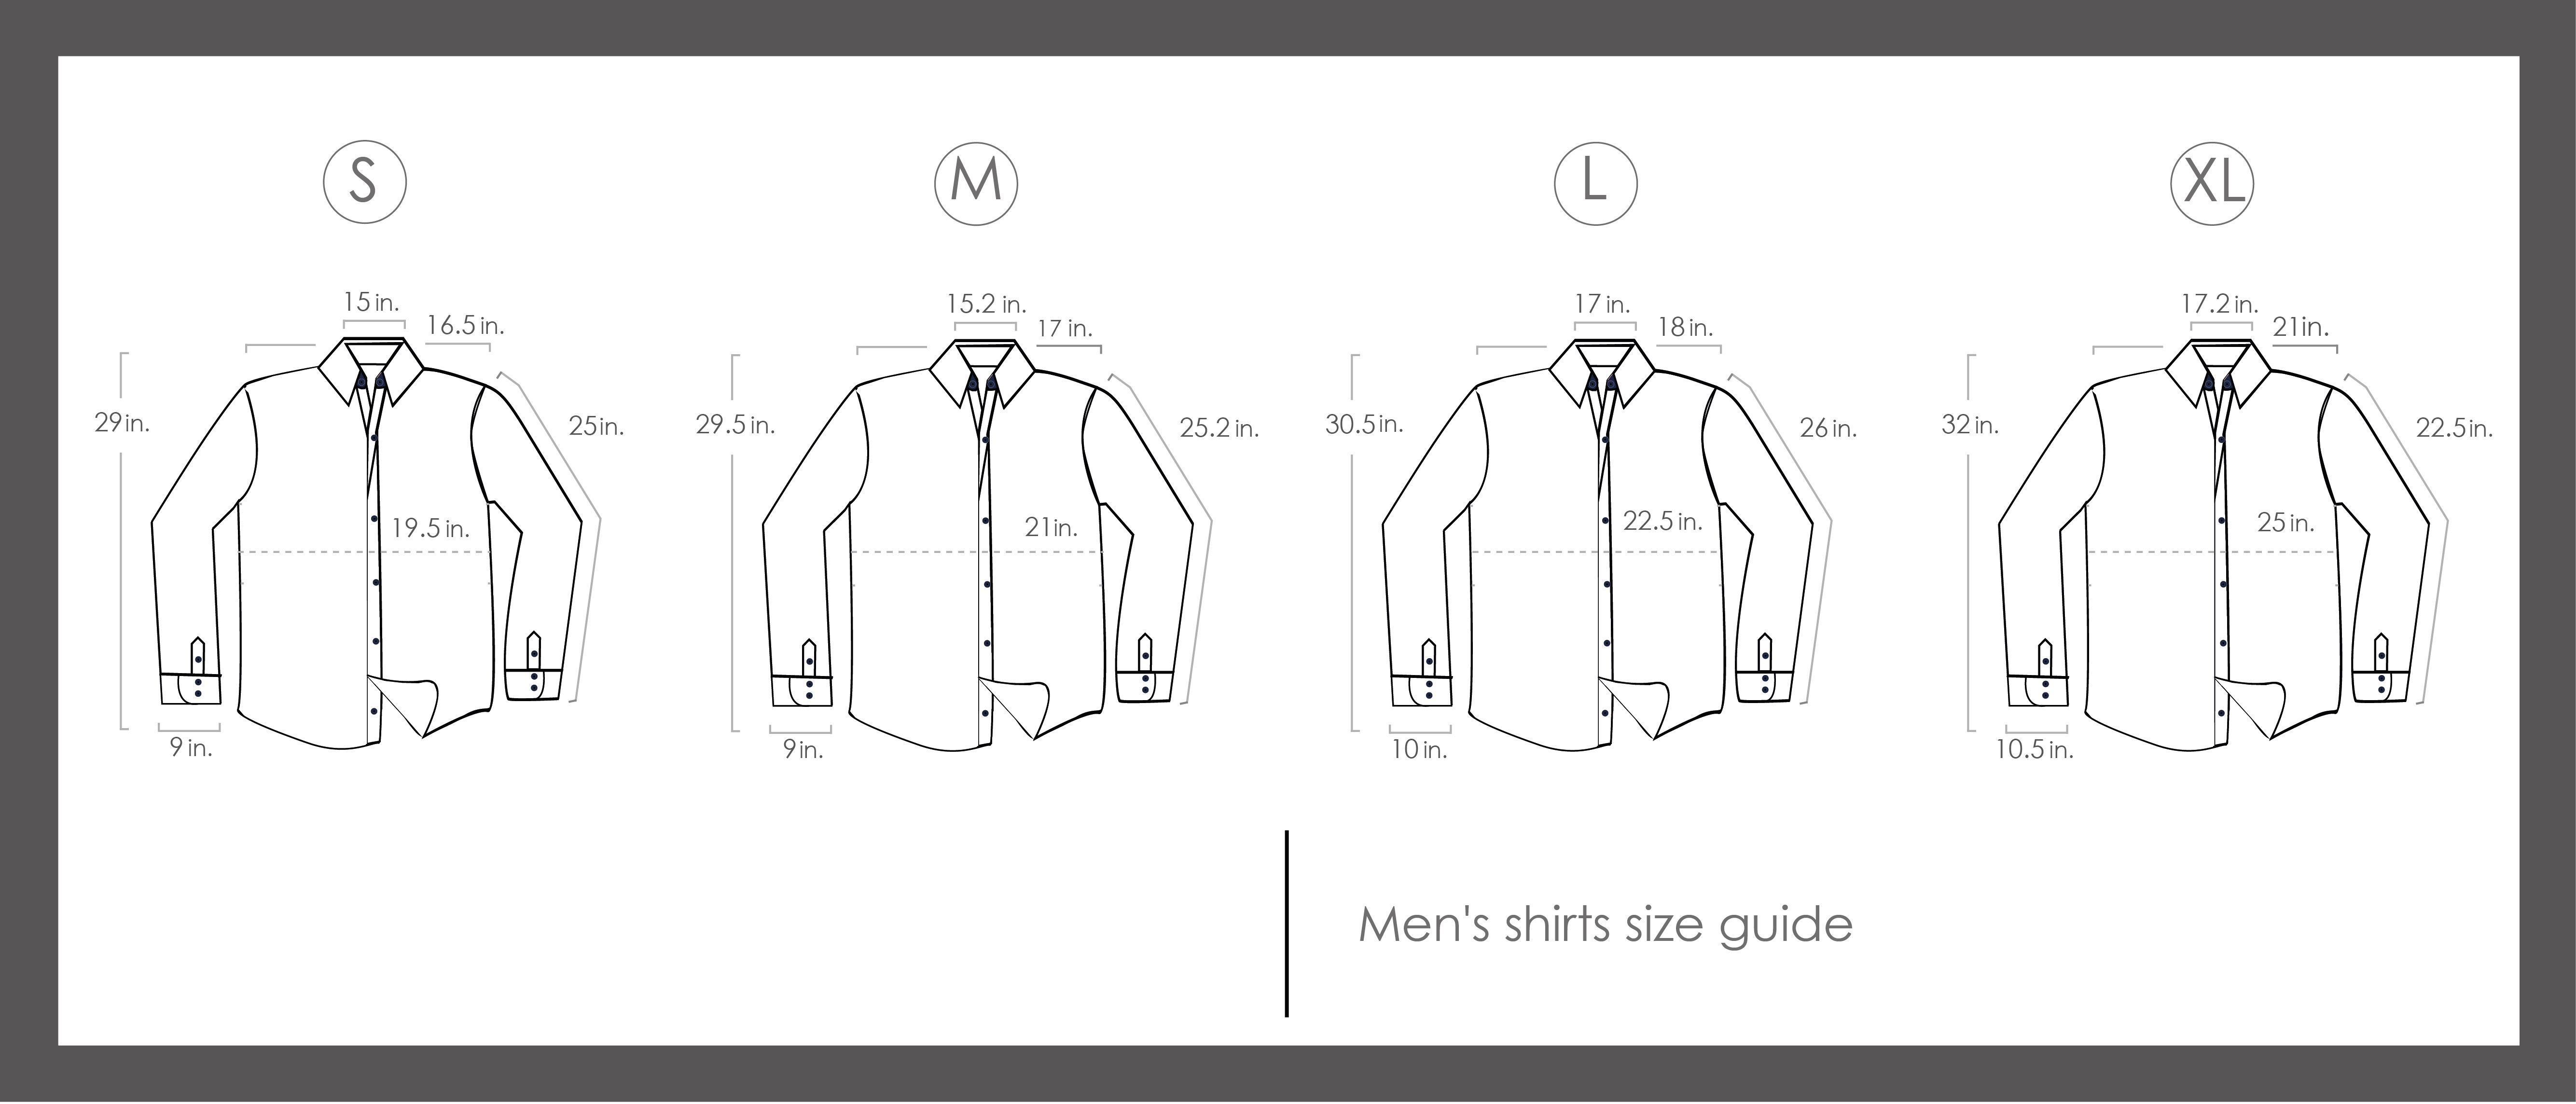 size-mens-shirts.jpg